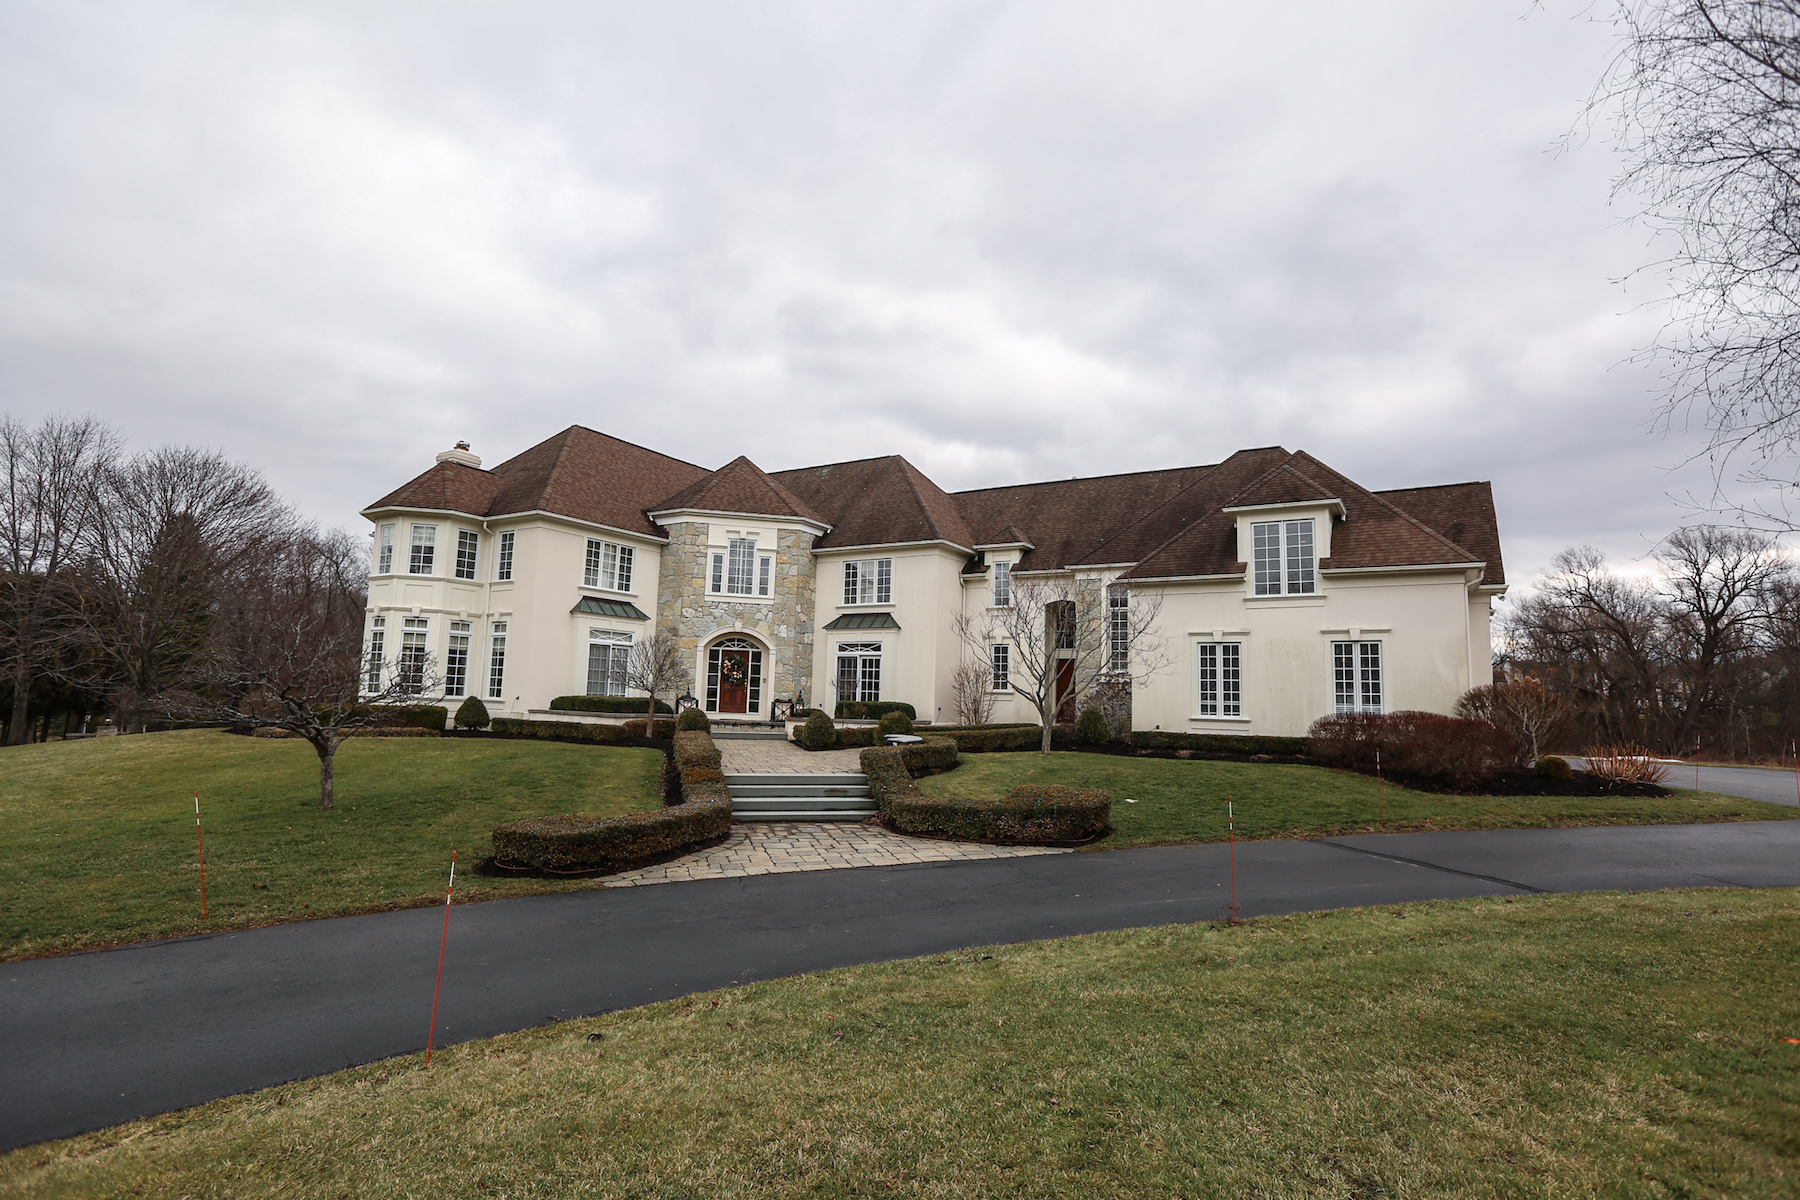 Other Residential for Sale at Kingsfield Drive Estate 8 Kingsfield Dr Pittsford, New York 14534 United States